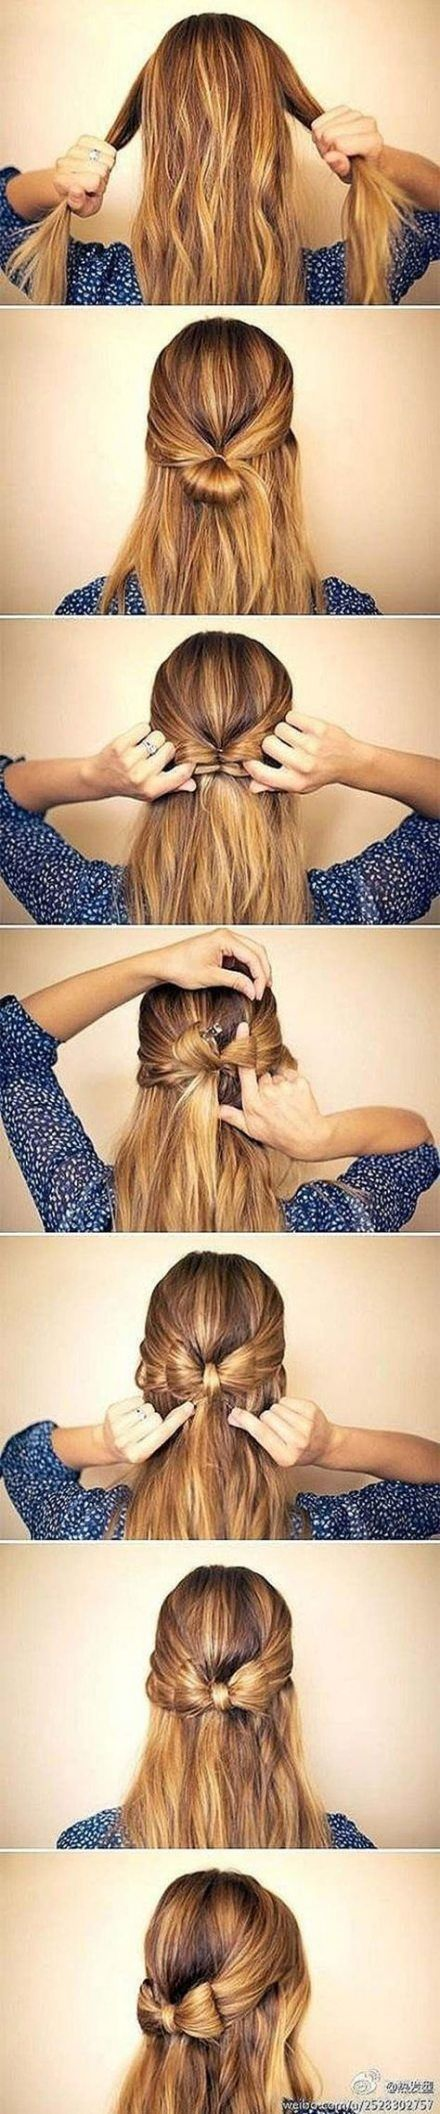 Hair long hairstyles lazy girl 19+ ideas - #faules #styles # ideas #lange #madchen -